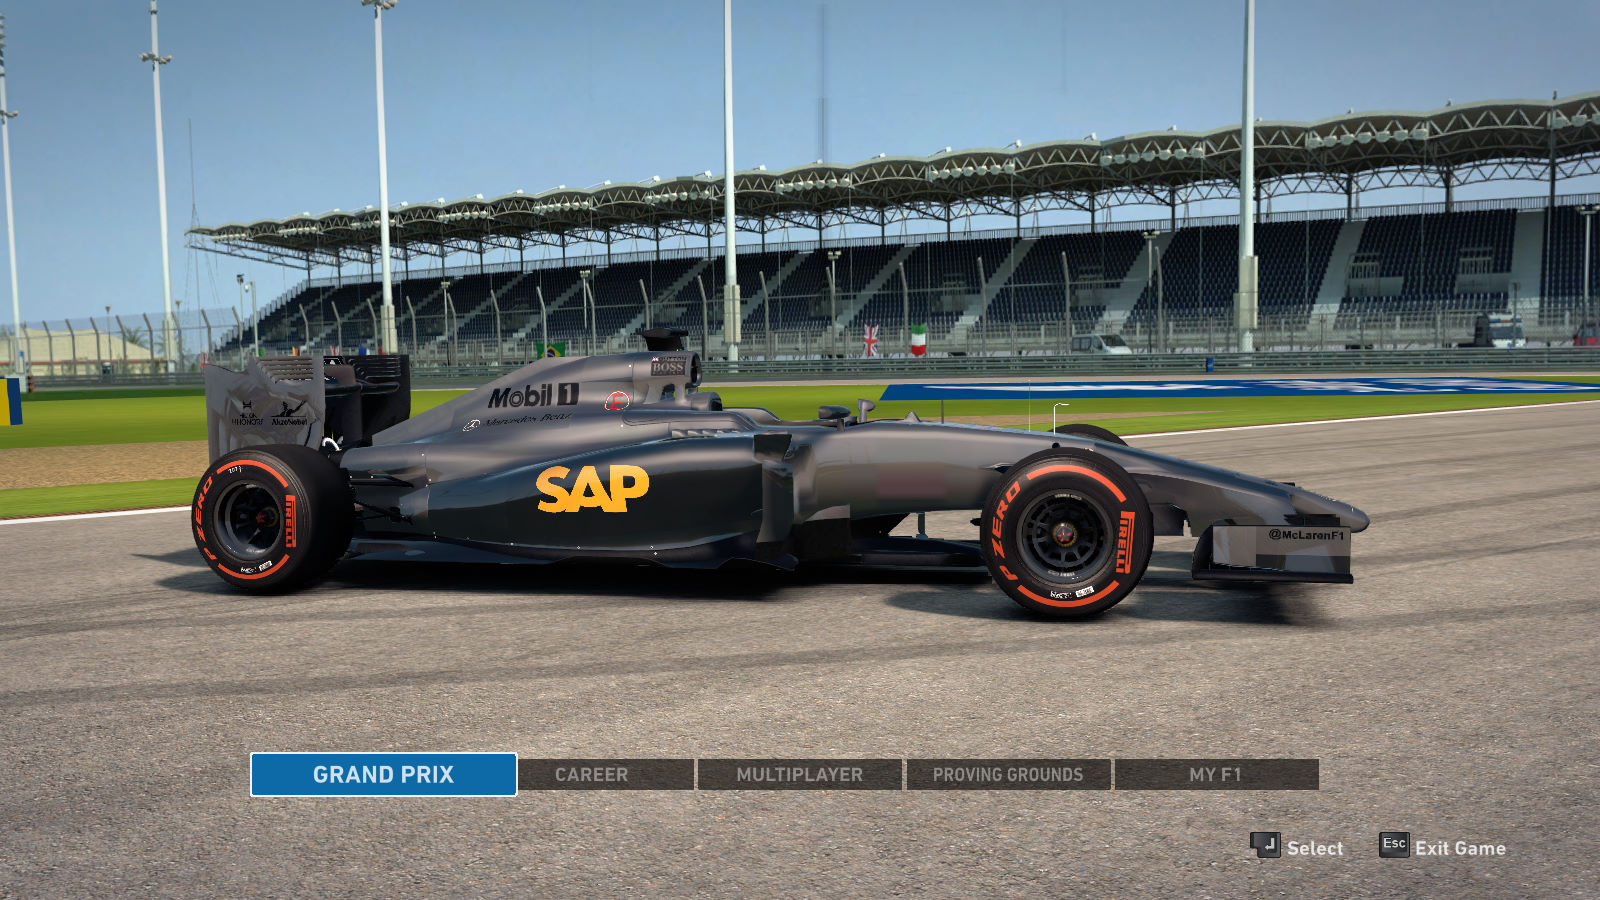 2014 Mclaren Austin livery | RaceDepartment Race 2 Wallpapers Hd